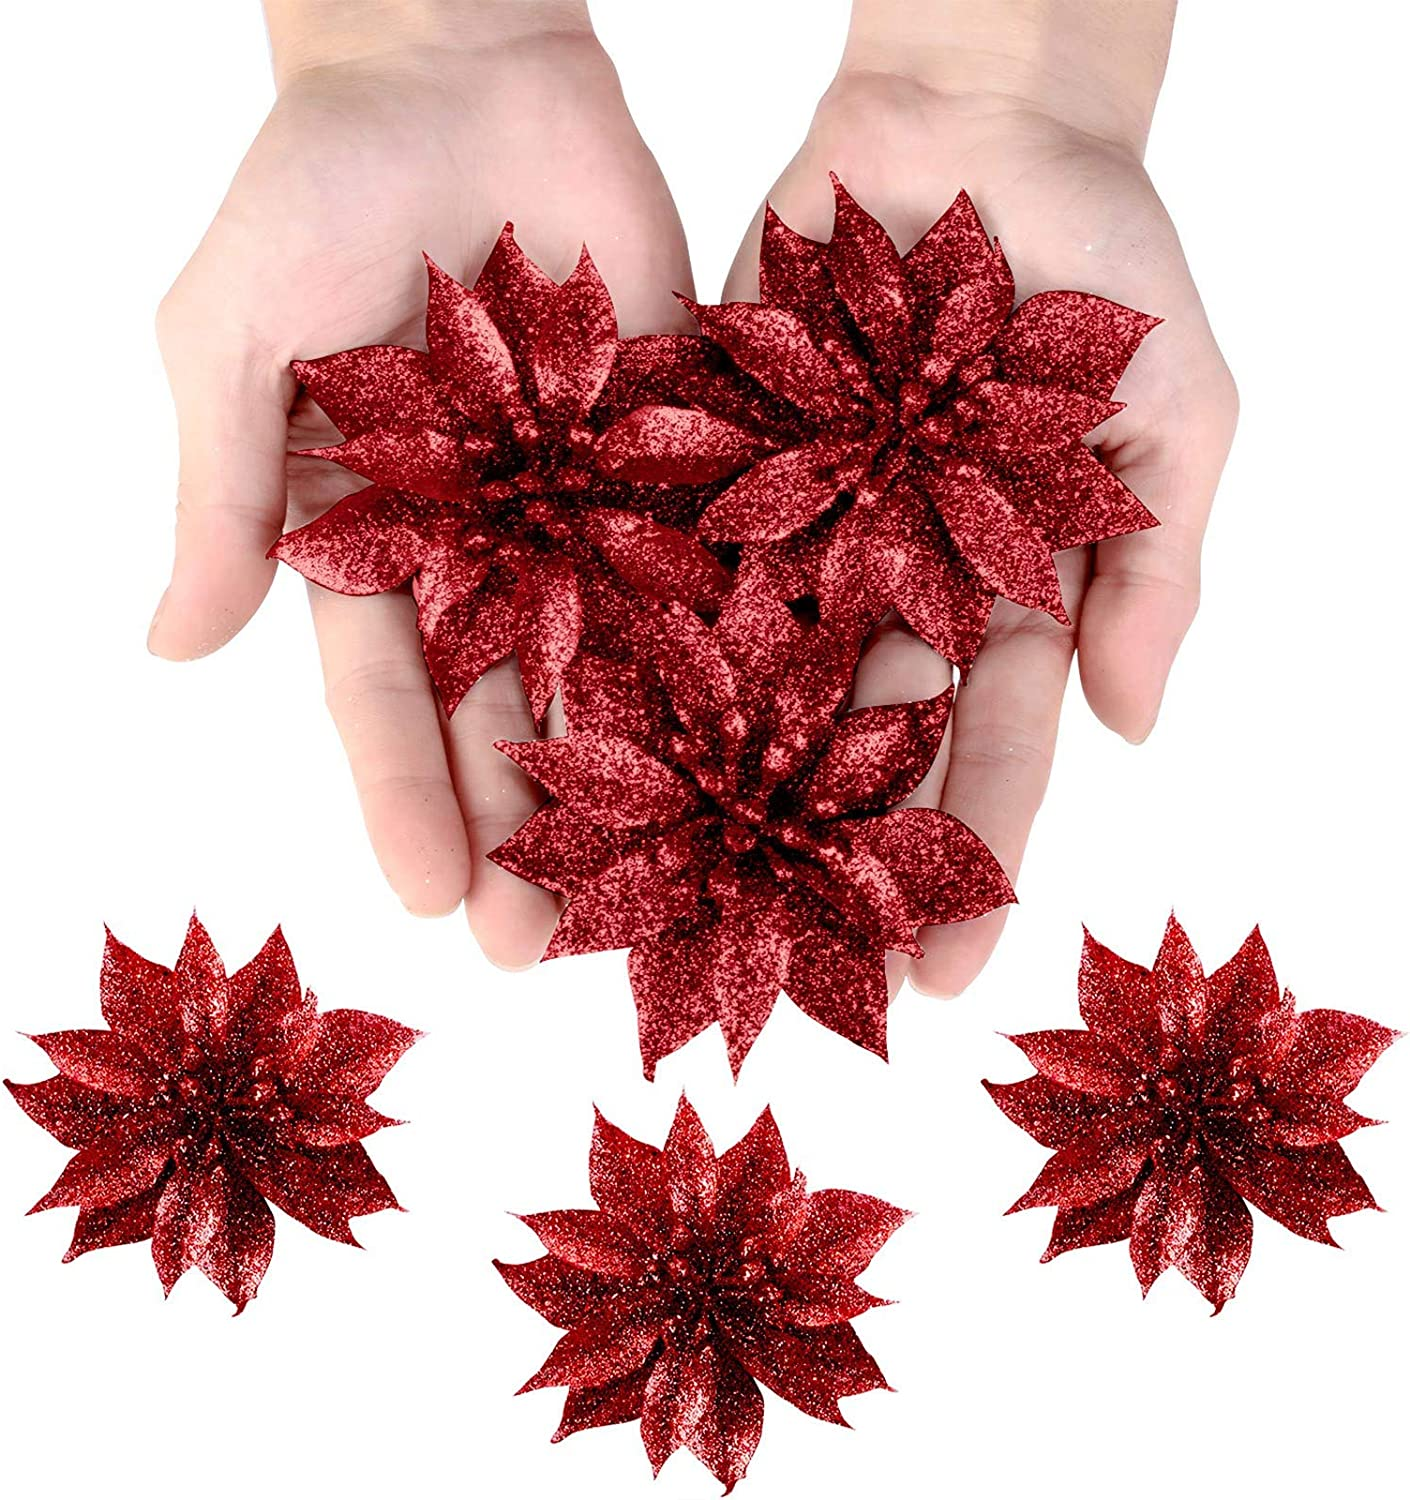 36 Pieces Christmas Glitter Poinsettia Flowers Decorative Artificial Flowers for Christmas Wreath Christmas Tree Ornaments Blue